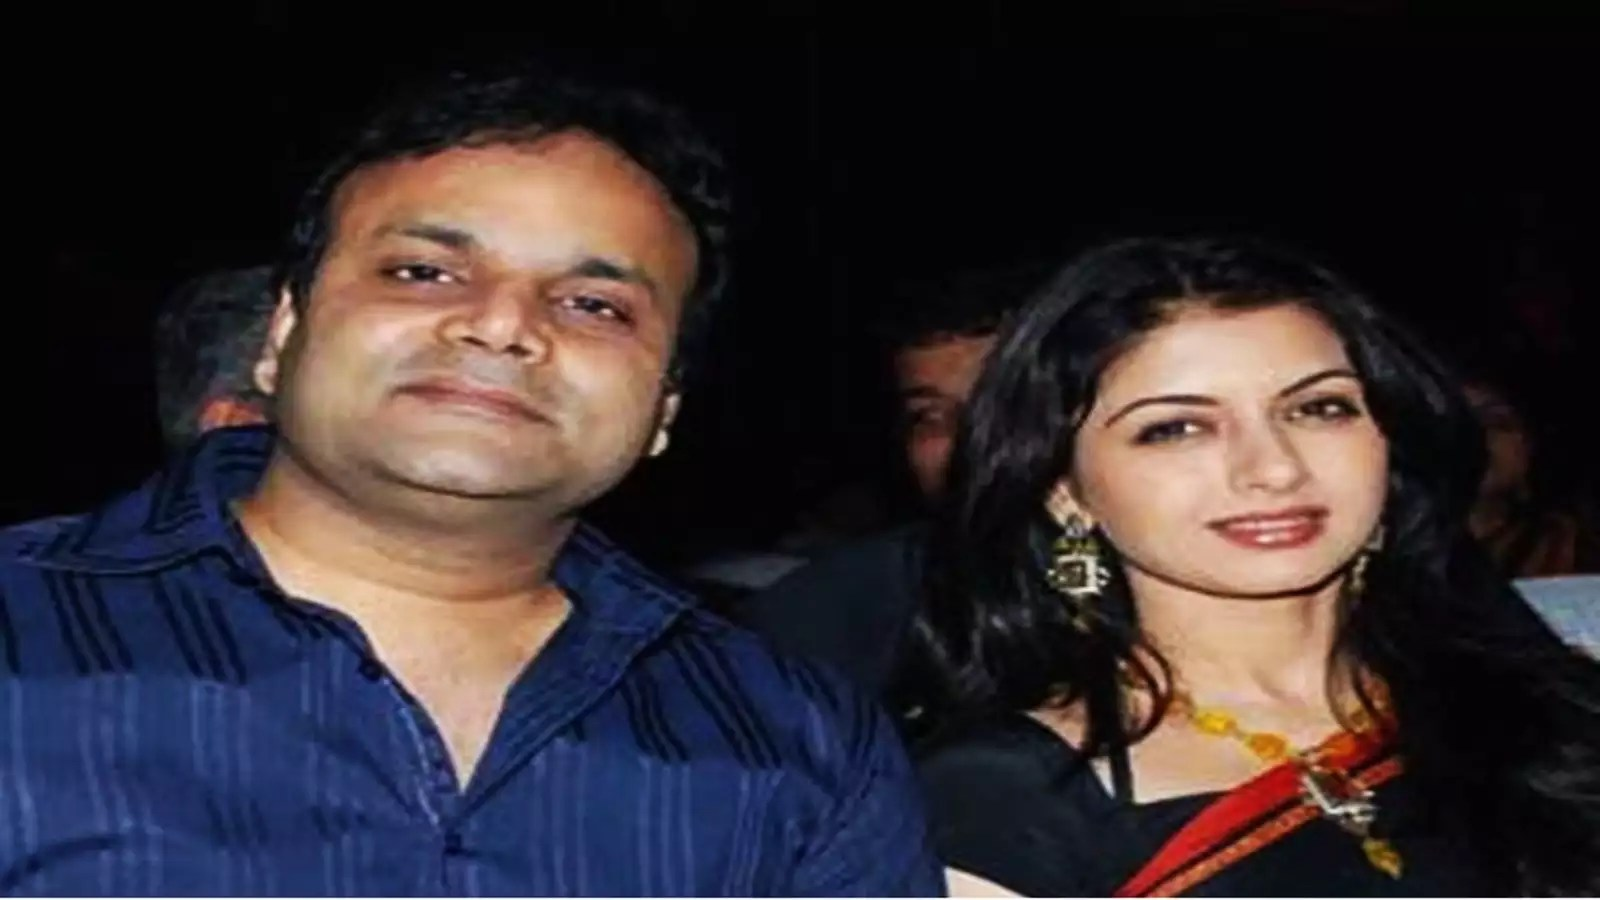 Himalaya Halle Maine Pyaar Kiya' Fame Bhagyashree's Husband Himalaya Dassani Arrested For Gambling, Gets Out On Bail | Hindi Movie News - Times Of India